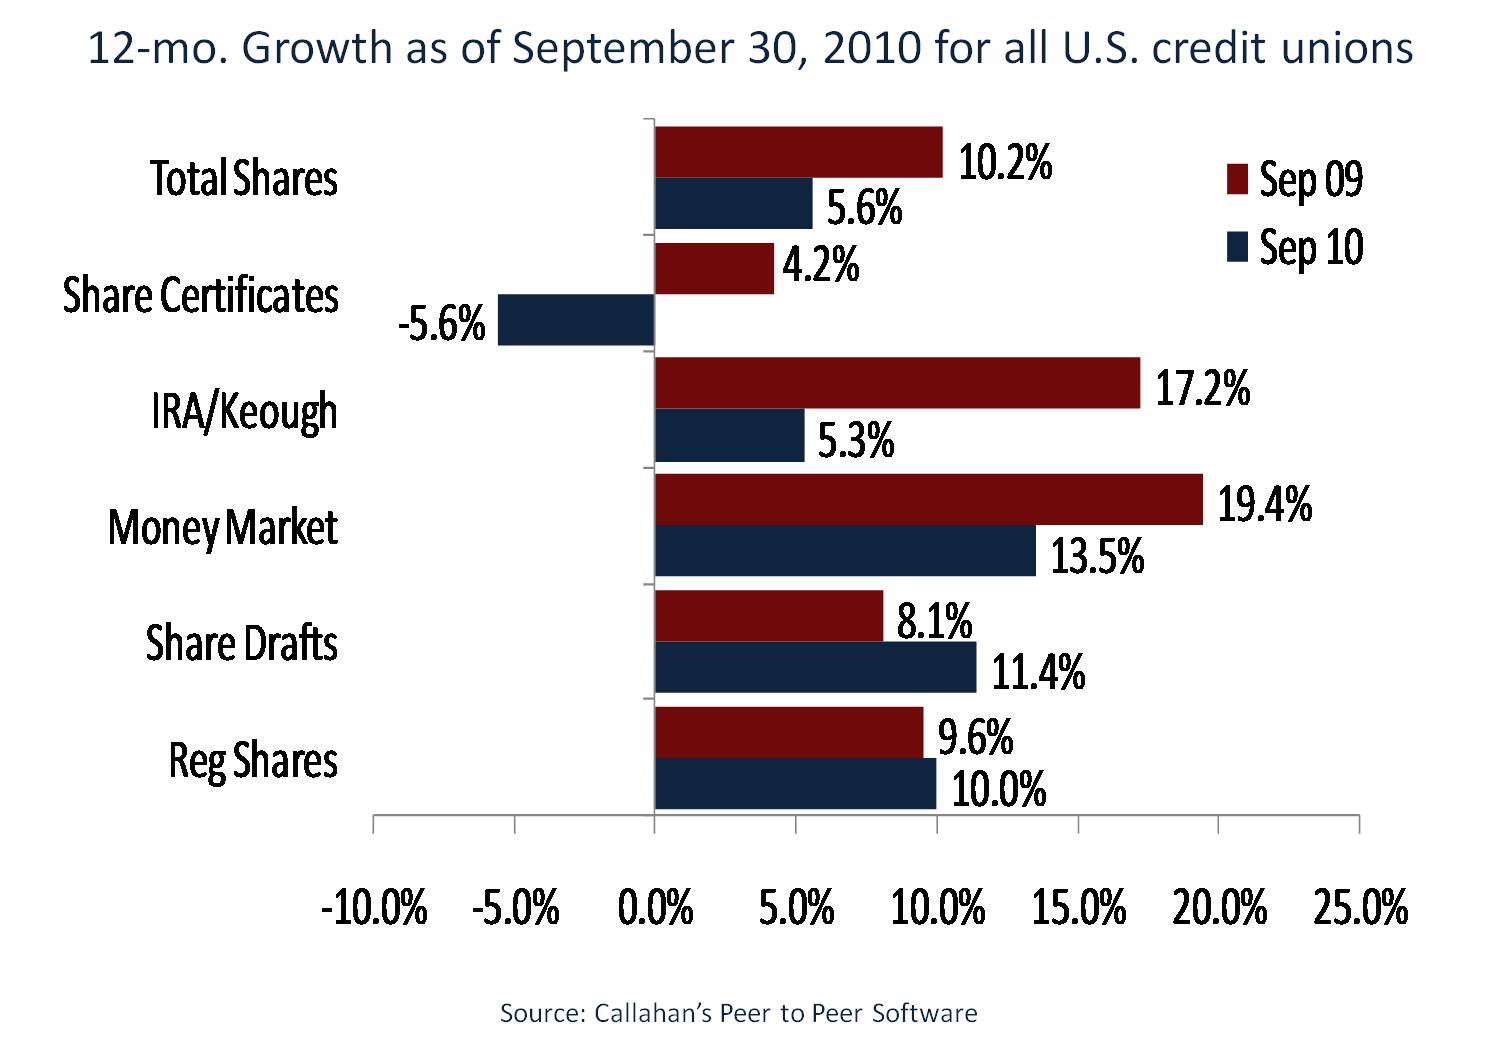 12-month Deposit Growth for all U.S. Credit Unions as of 3Q2010